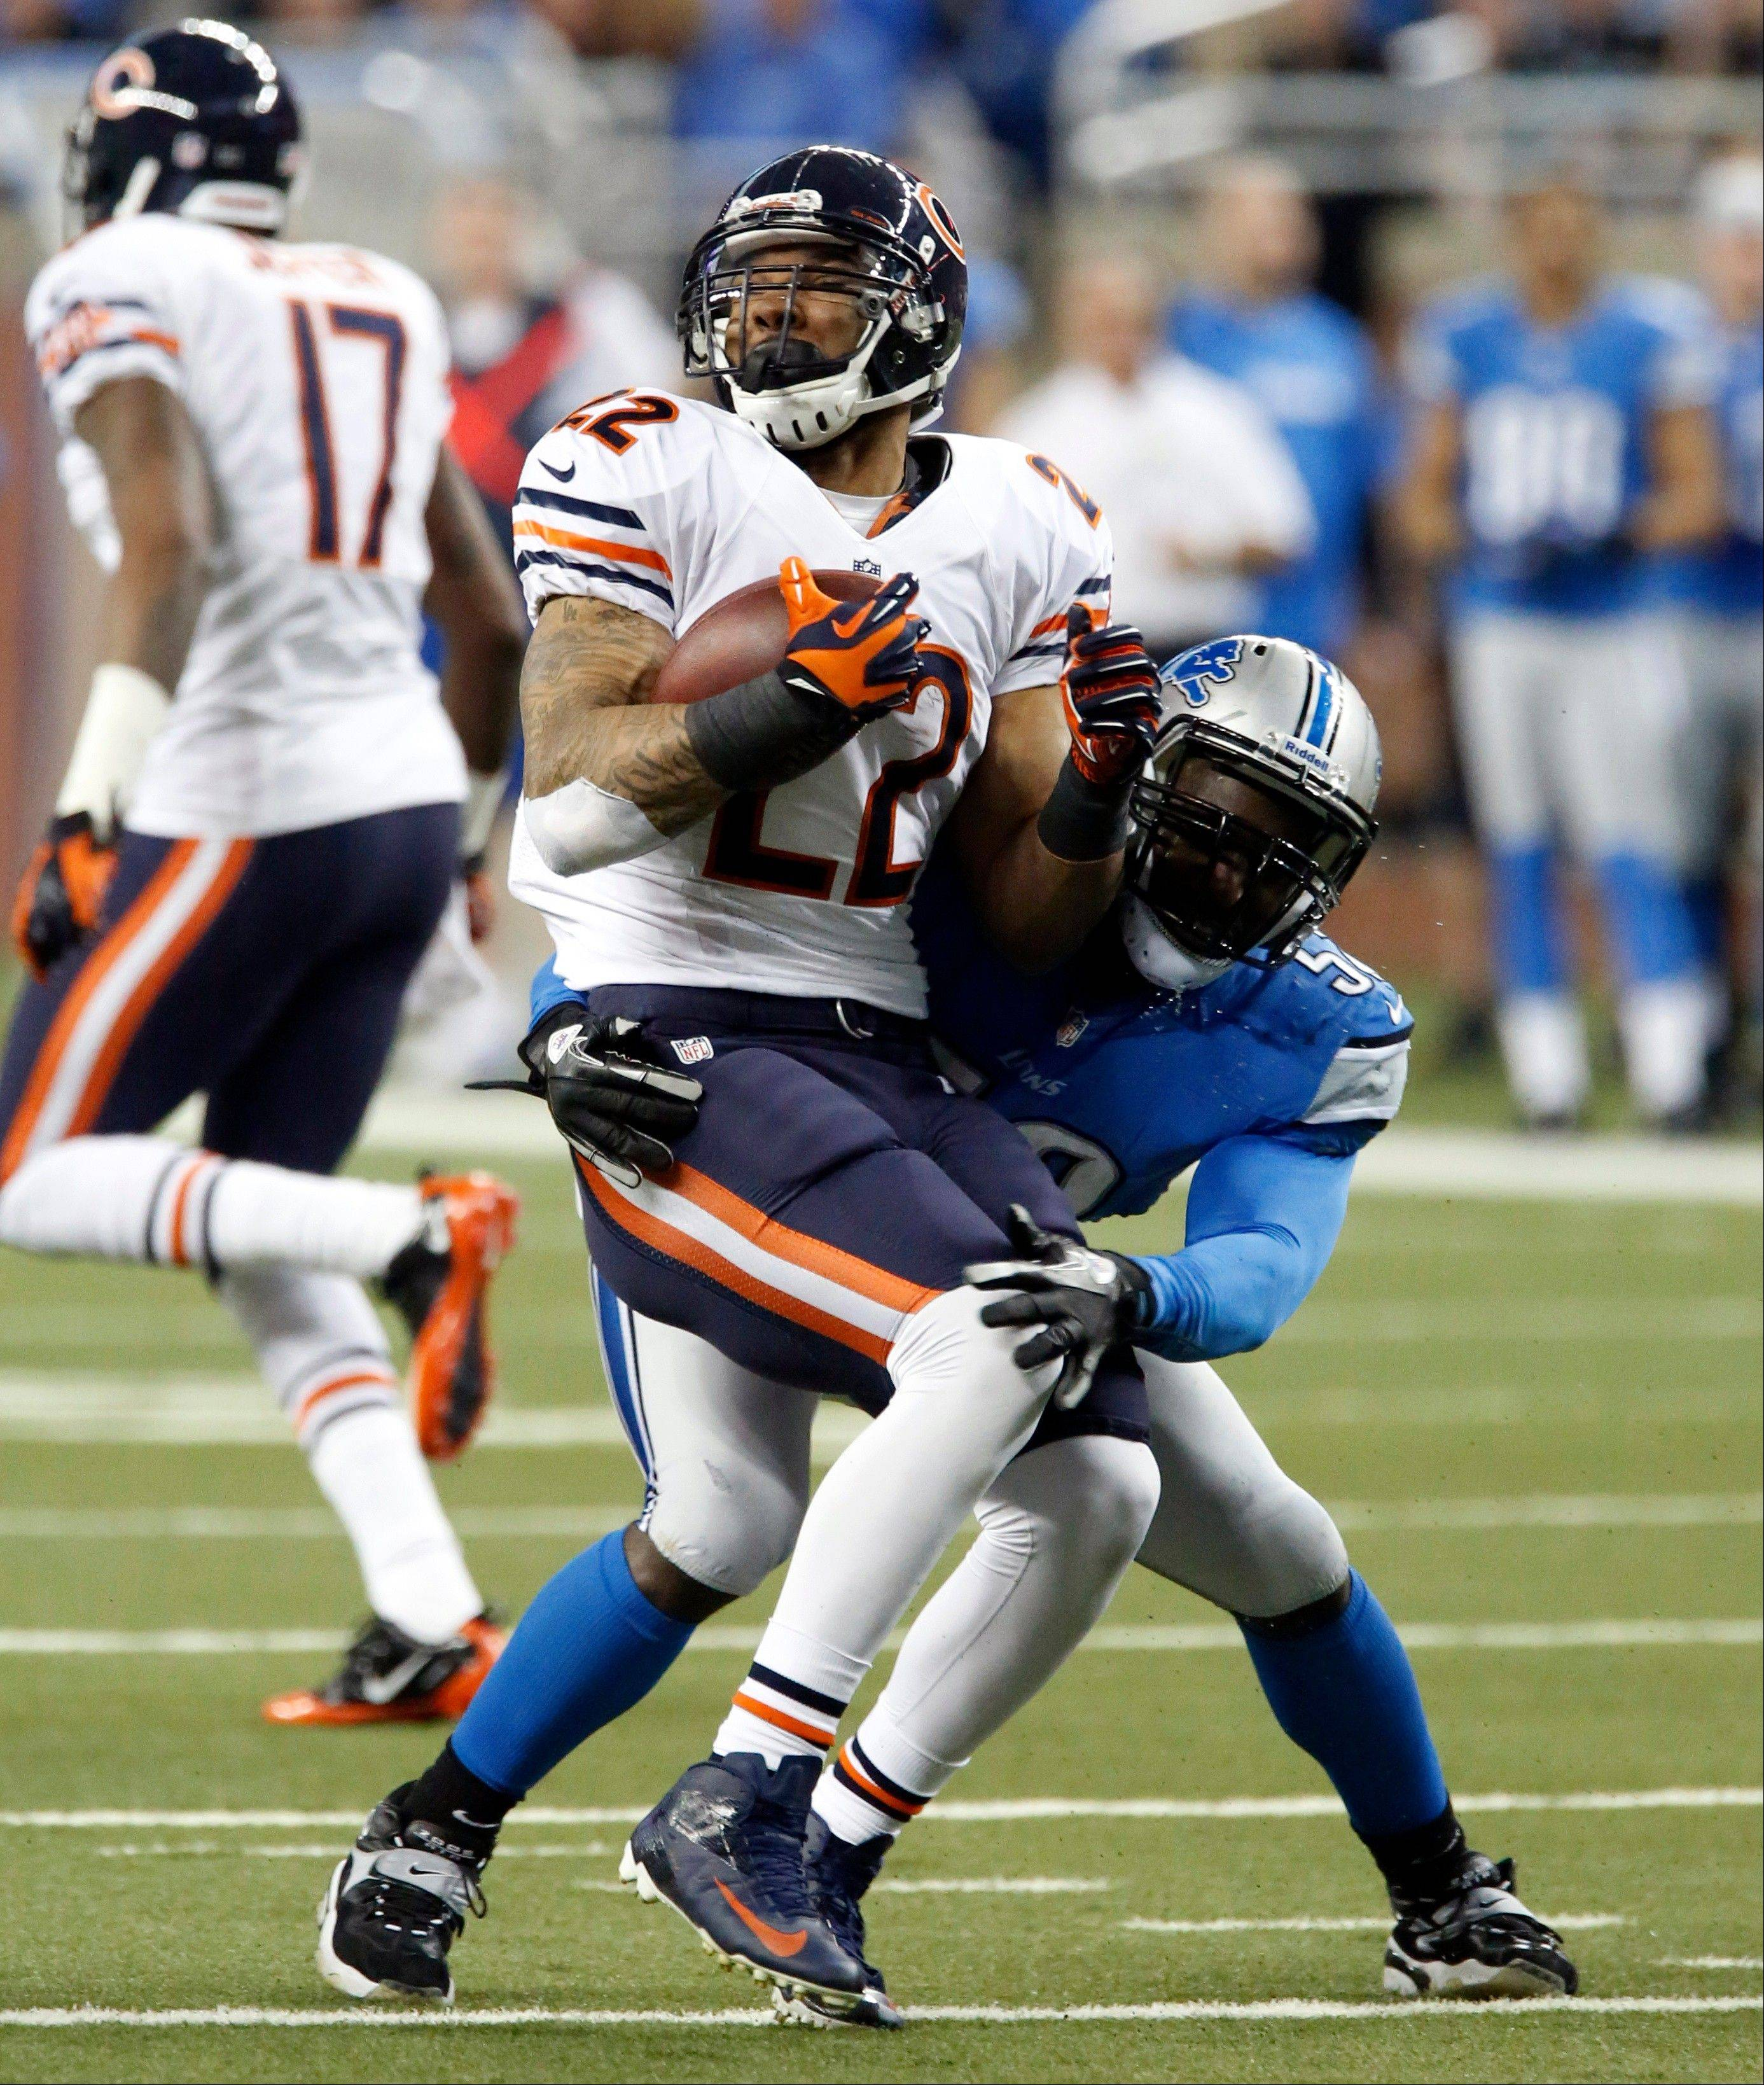 Chicago Bears running back Matt Forte (22) is stopped by Detroit Lions outside linebacker Justin Durant (52) during the first quarter.